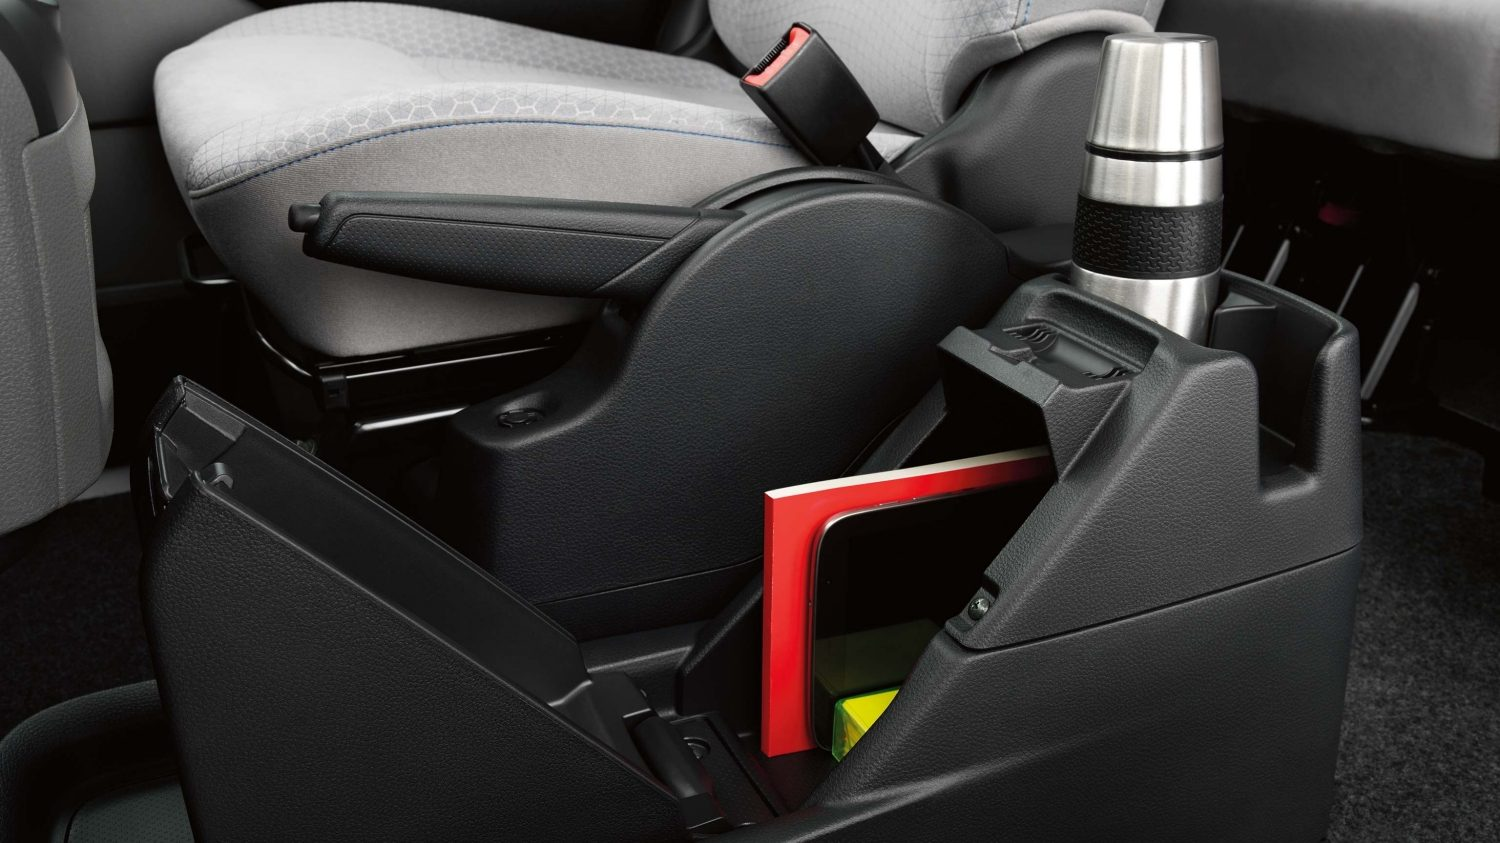 Van | Nissan e-NV200 | Under-seat storage trays